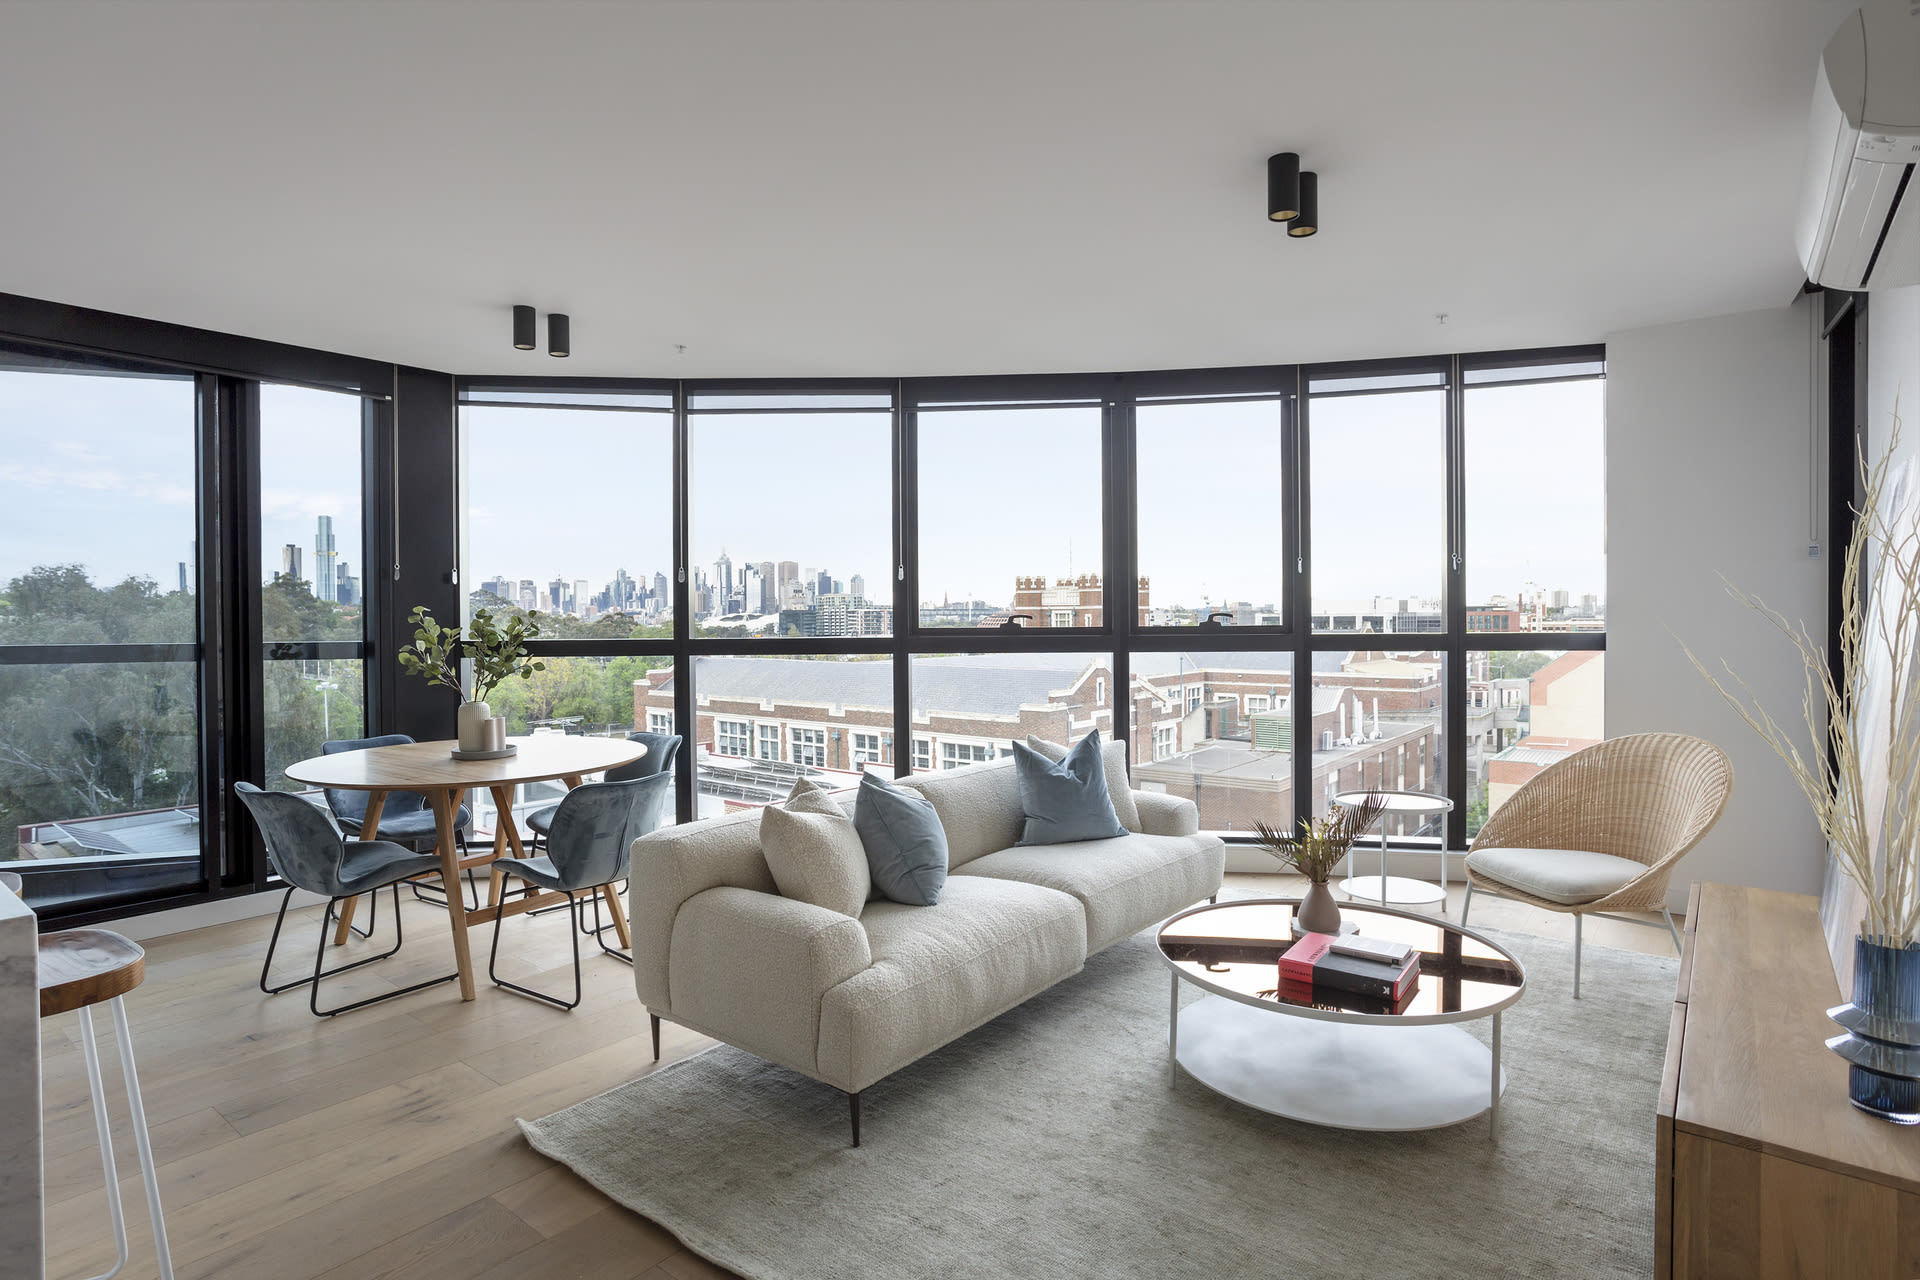 5 reasons to consider a home at 661 Chapel Street in Melbourne